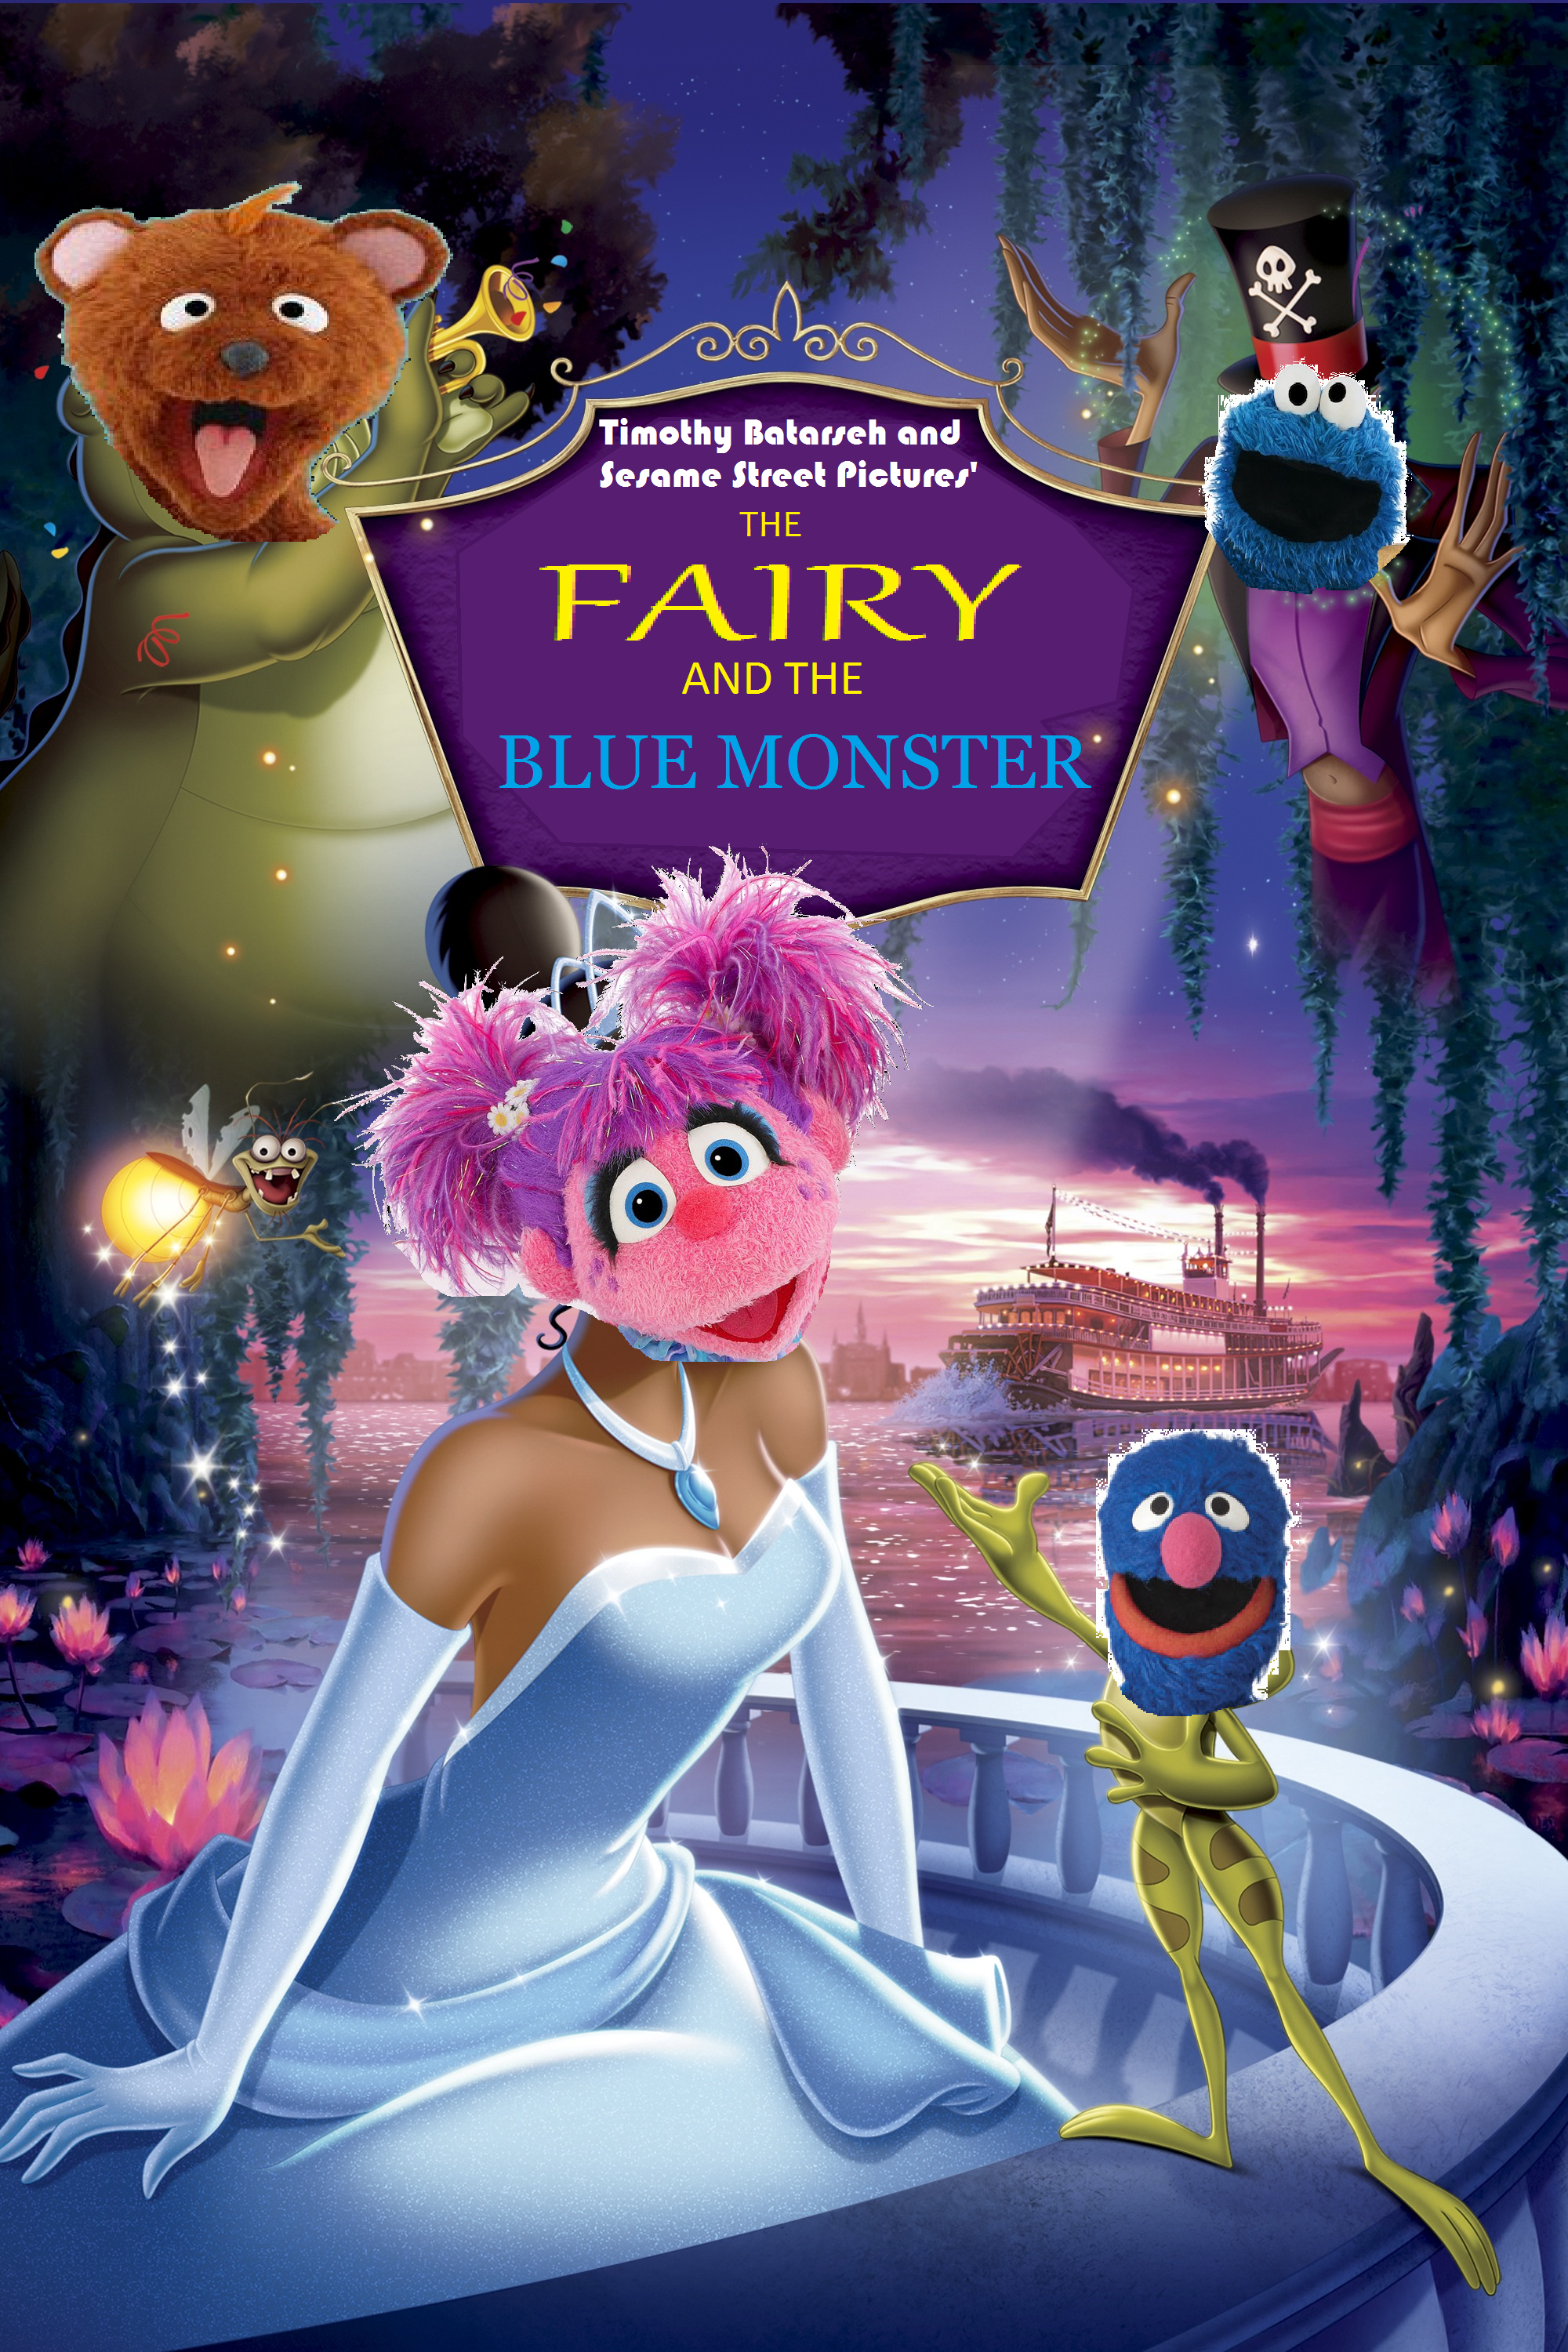 The Fairy and the Blue Monster